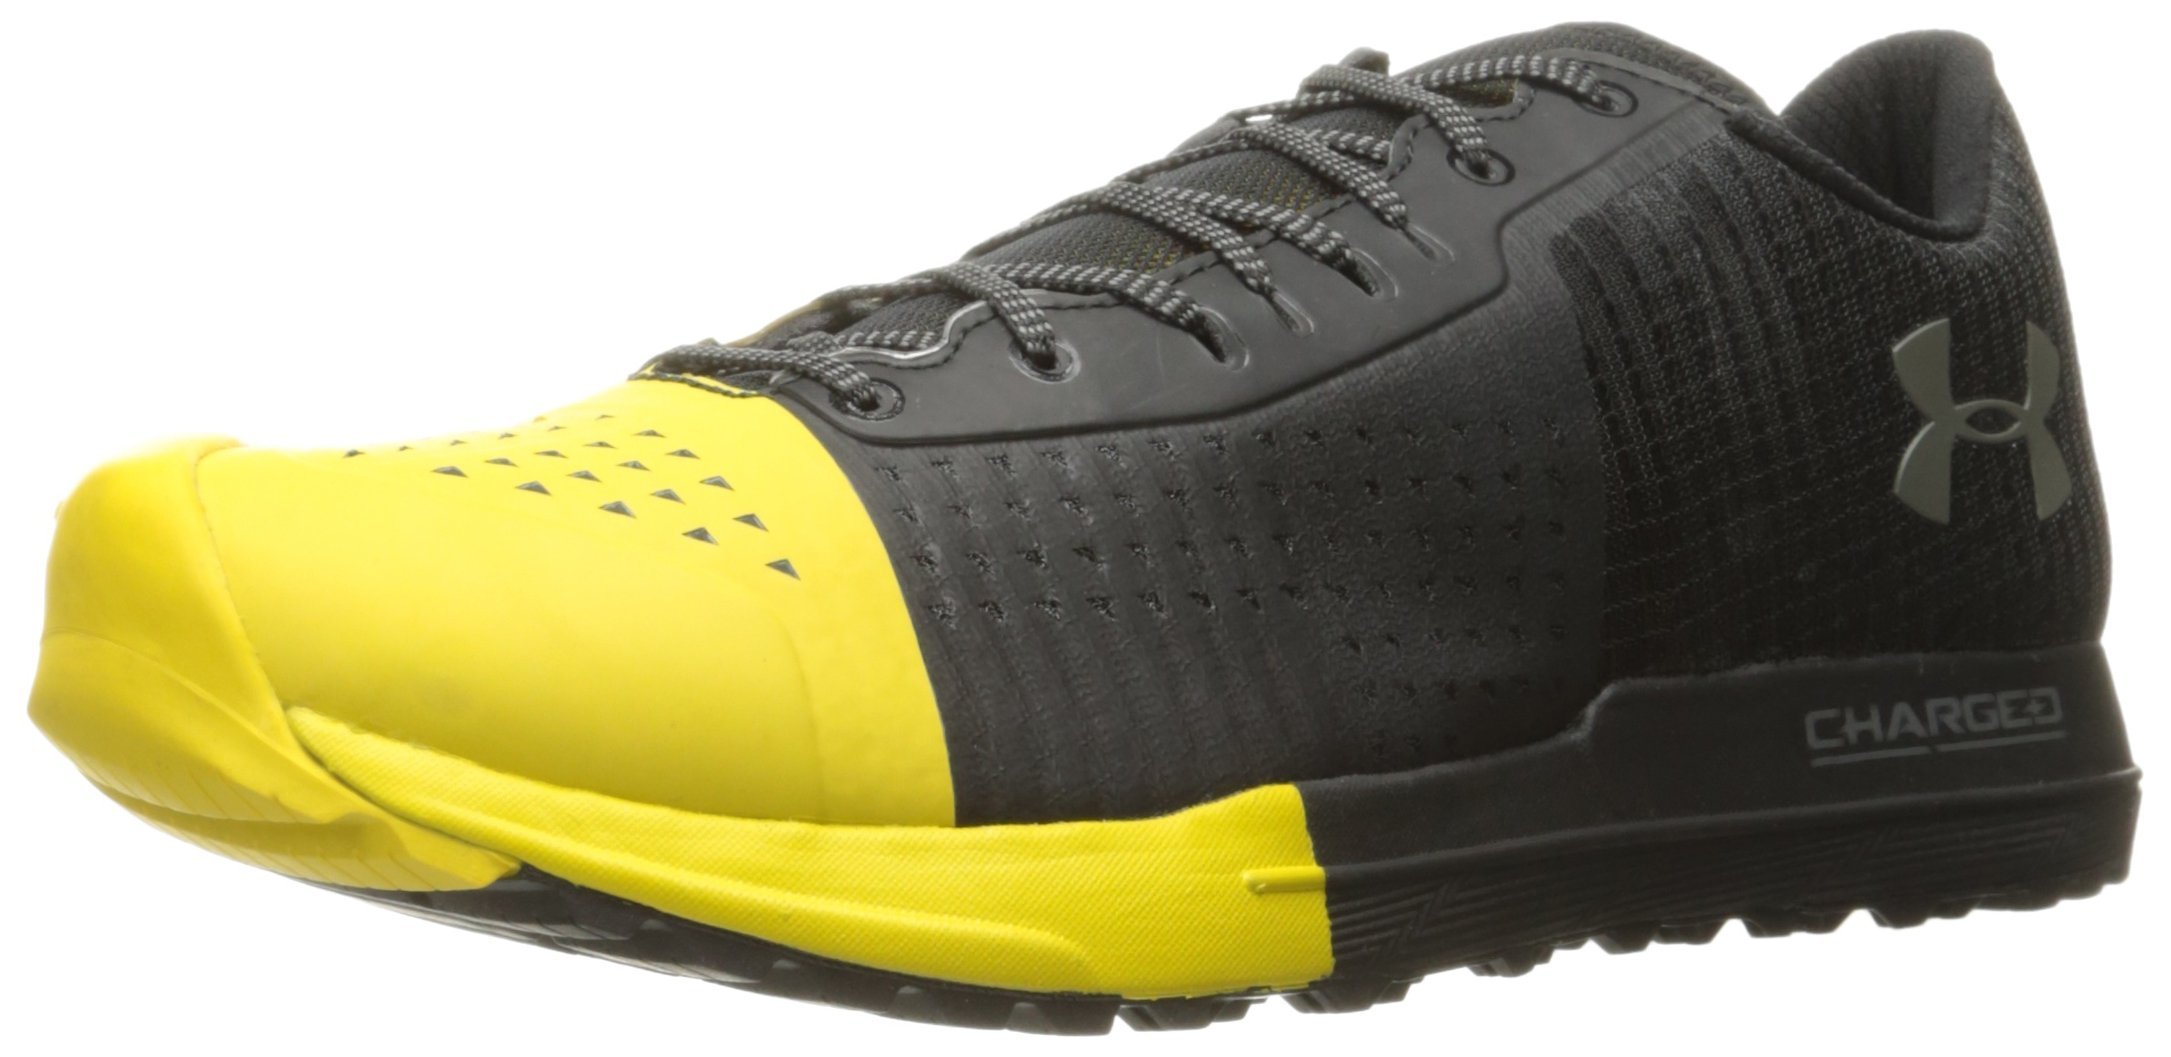 Under Armour Men's Horizon Ktv Running Shoe, Black (001)/Zeppelin Yellow, 8